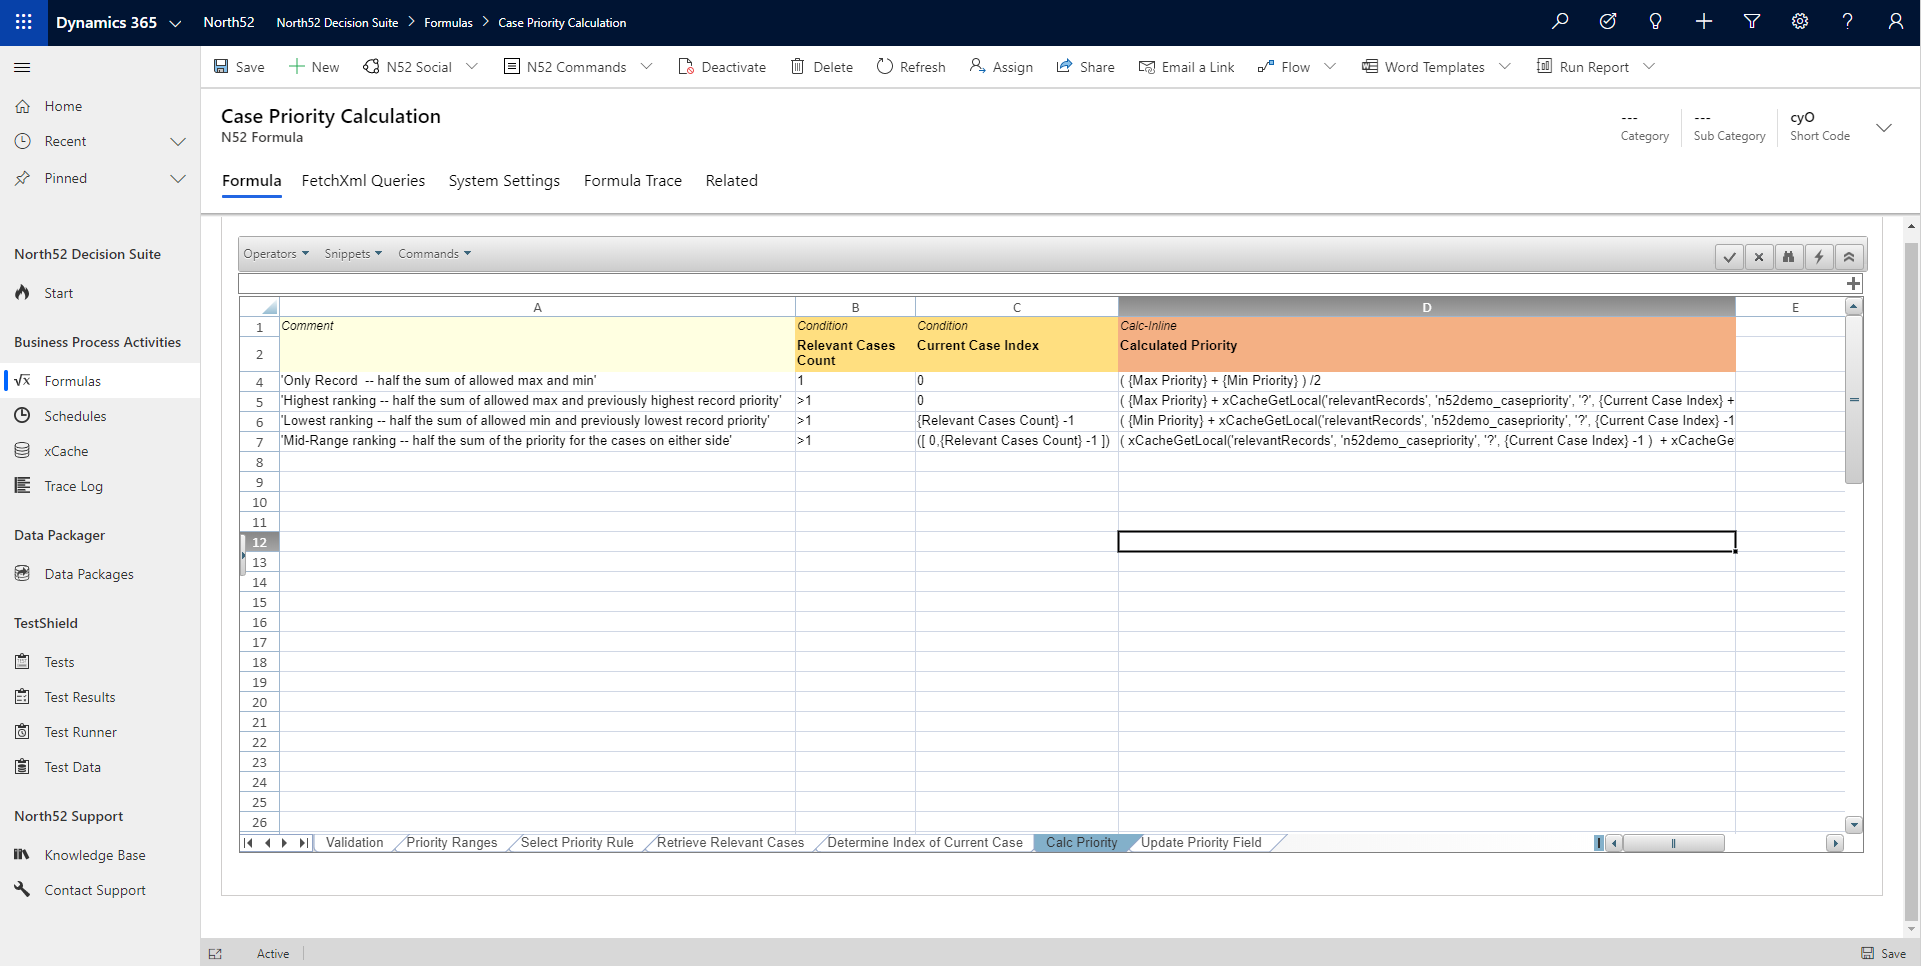 Calculate Priority Decision Table - North52 Business Rules Engine for Dynamics 365